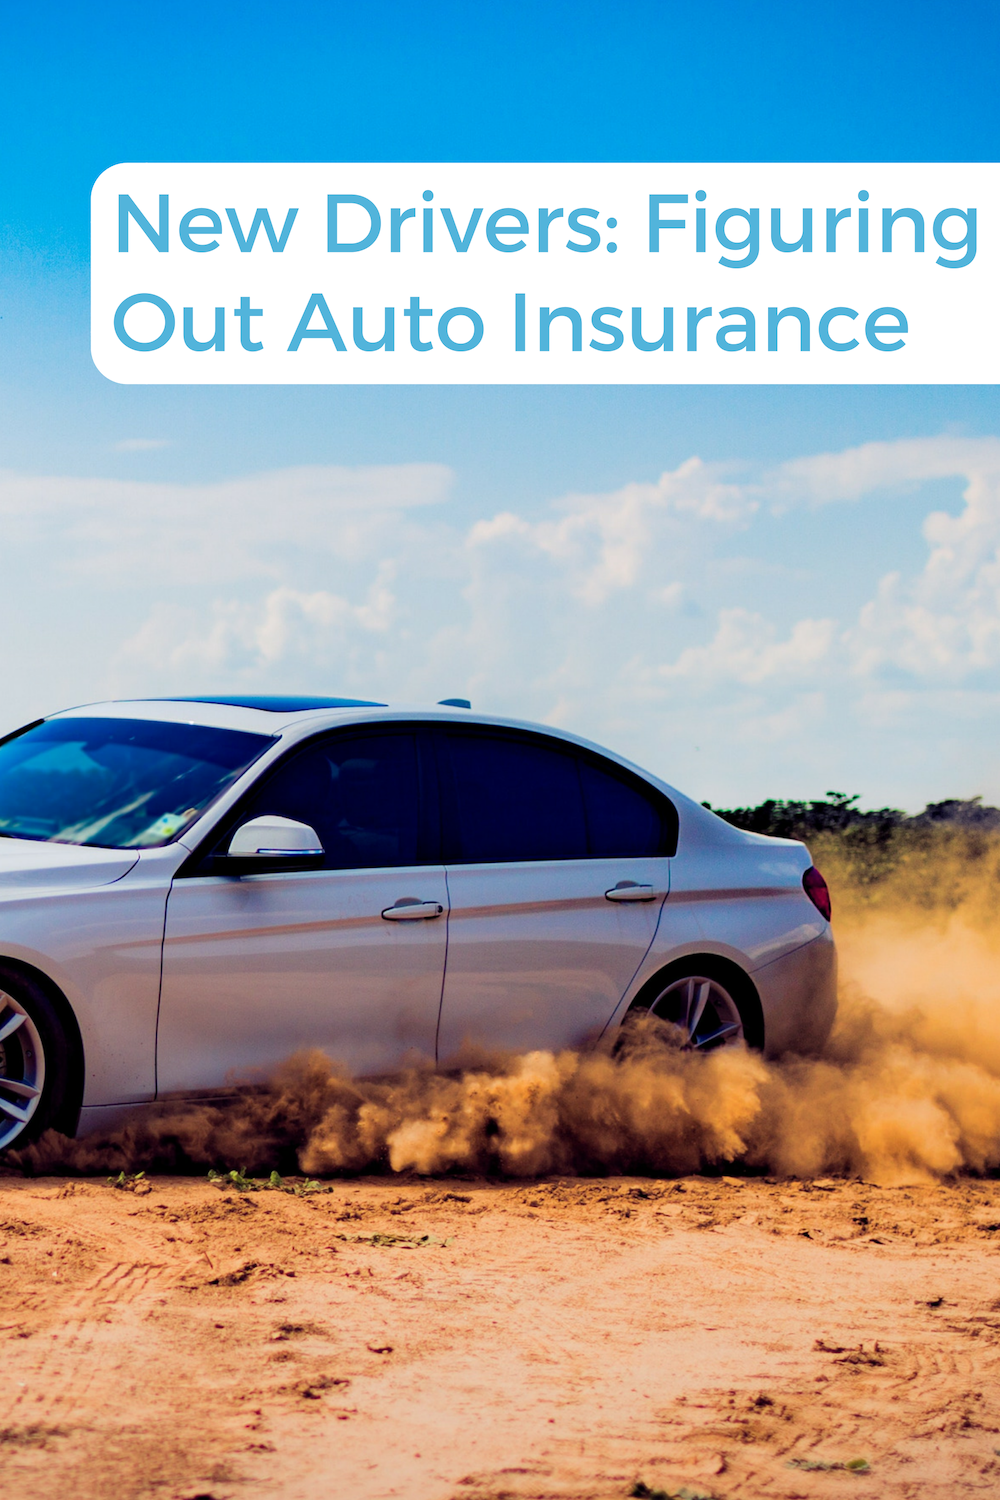 Here Are Some Tips On Picking An Auto Insurance Company As A New